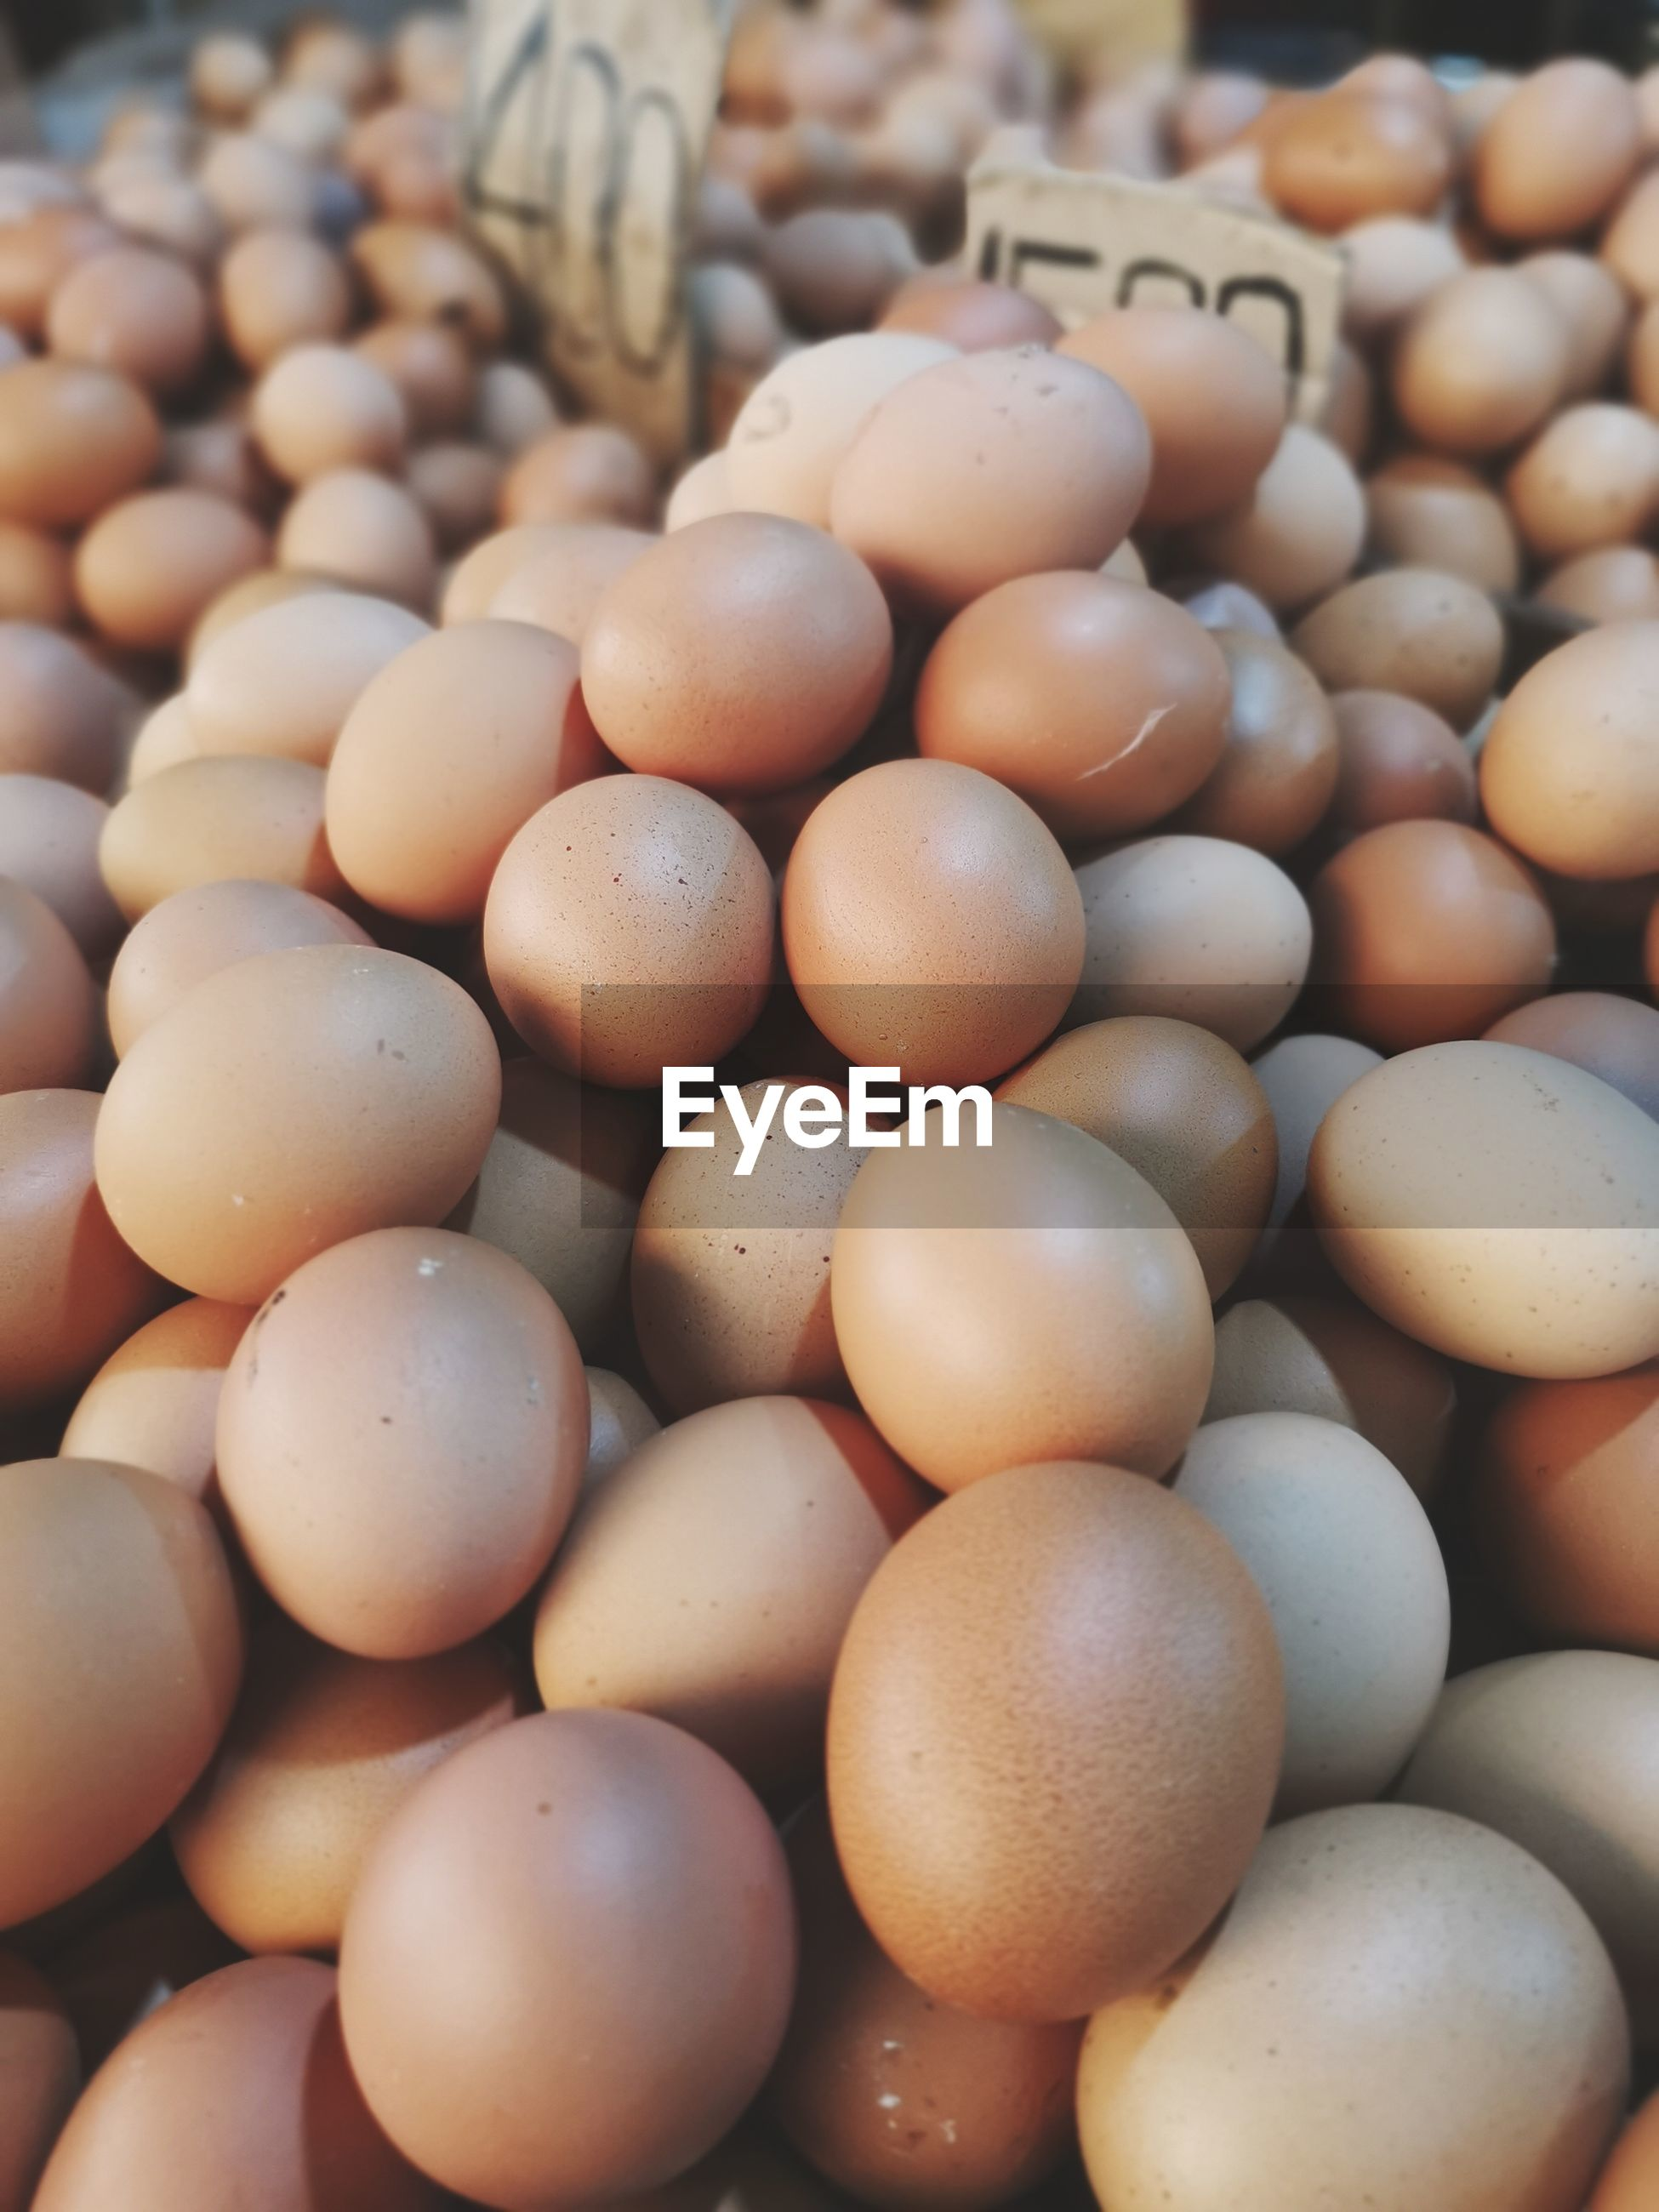 FULL FRAME SHOT OF EGGS IN MARKET